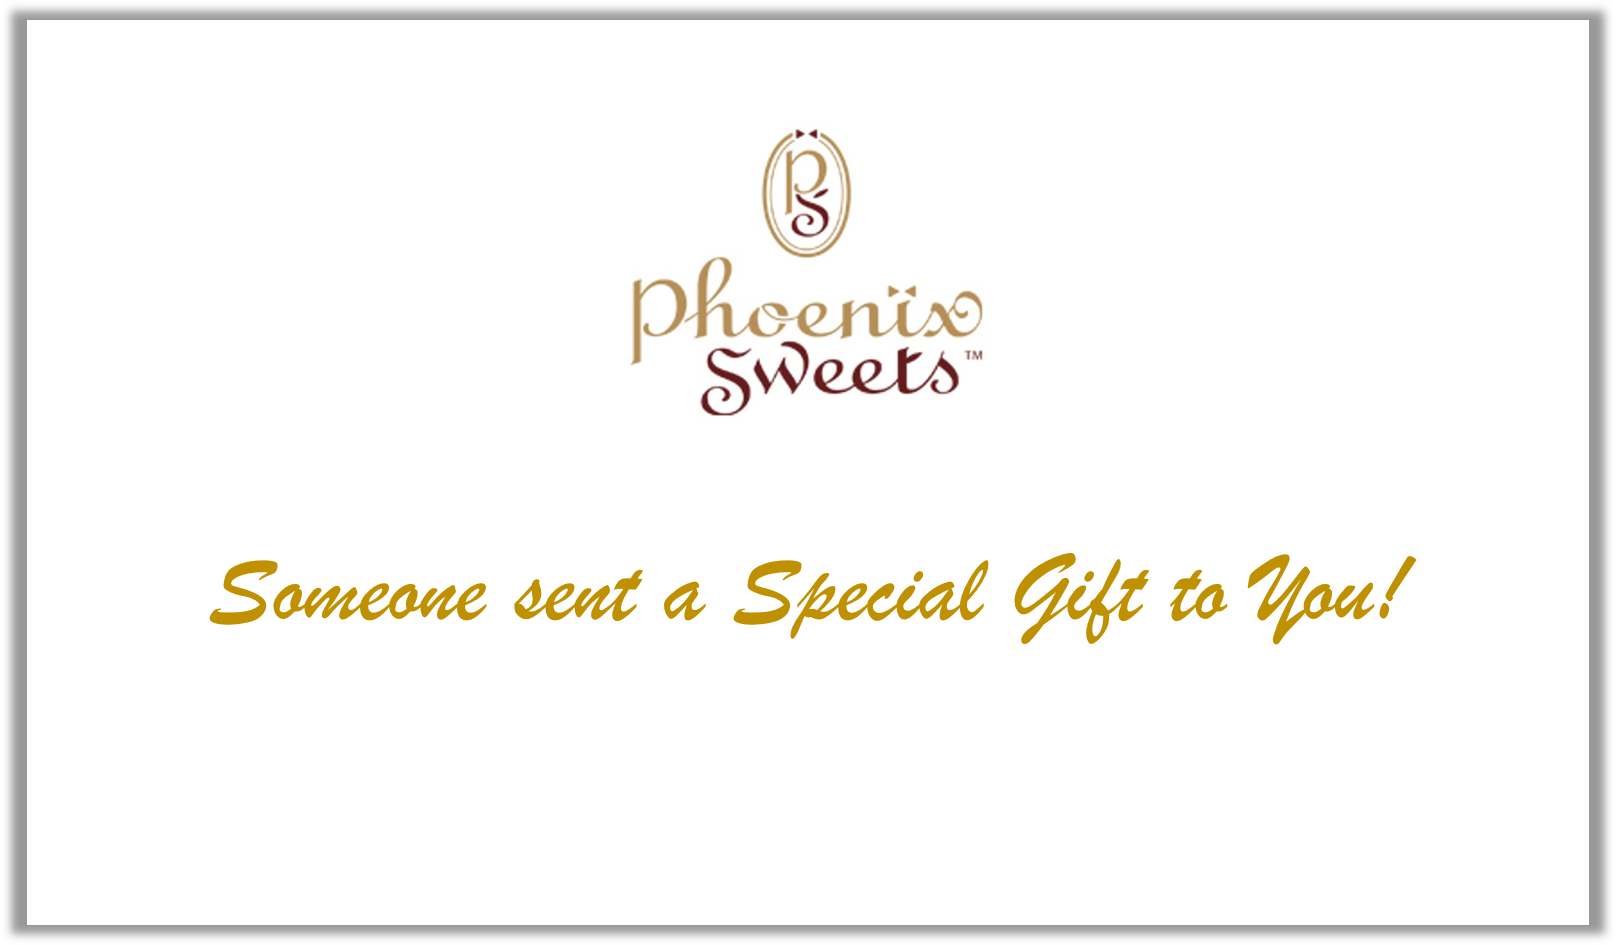 Phoenix Sweets - Digital Gift Card